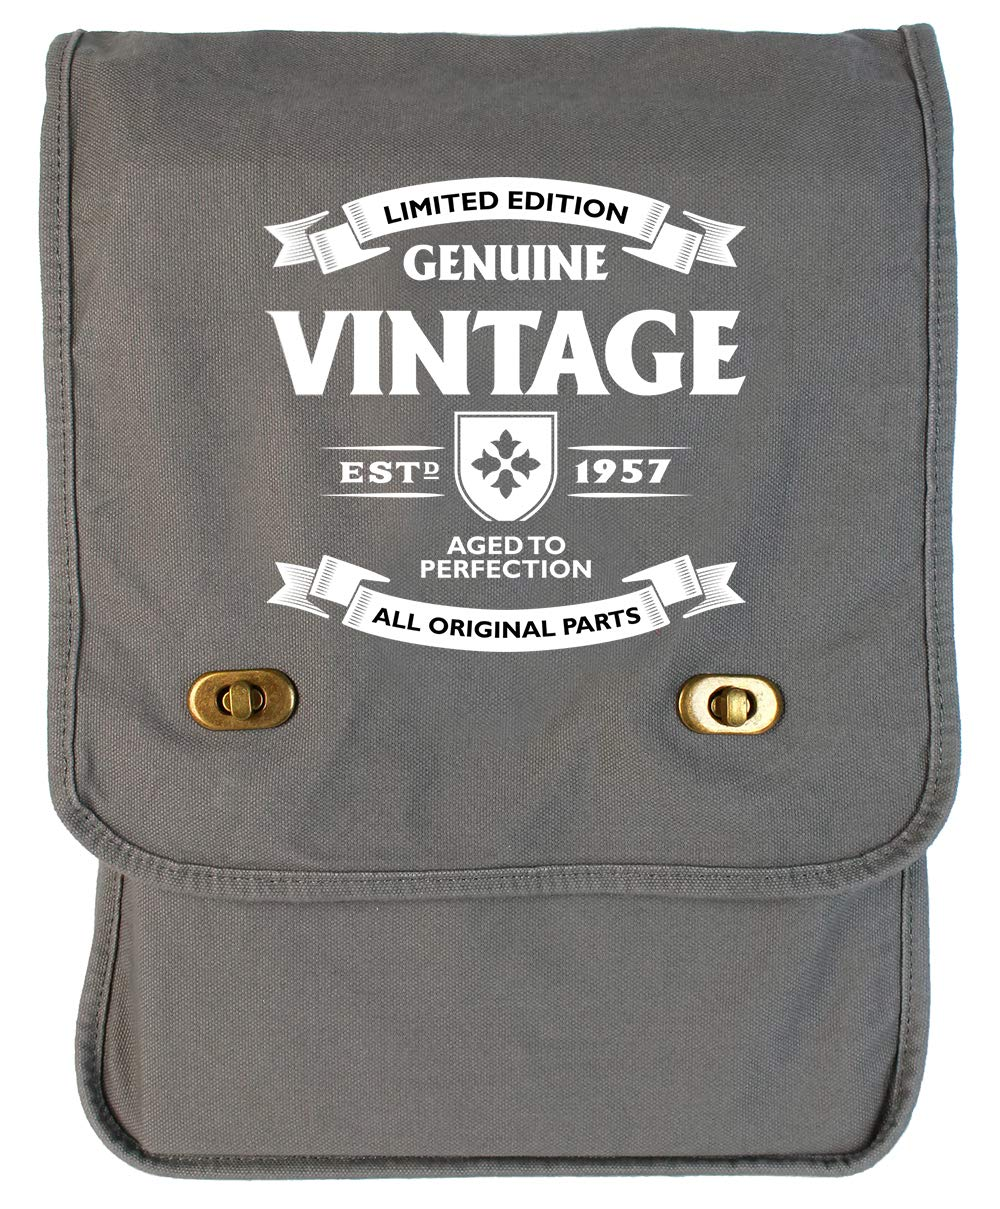 Tenacitee Aged to Perfection 1957 Grey Brushed Canvas Messenger Bag